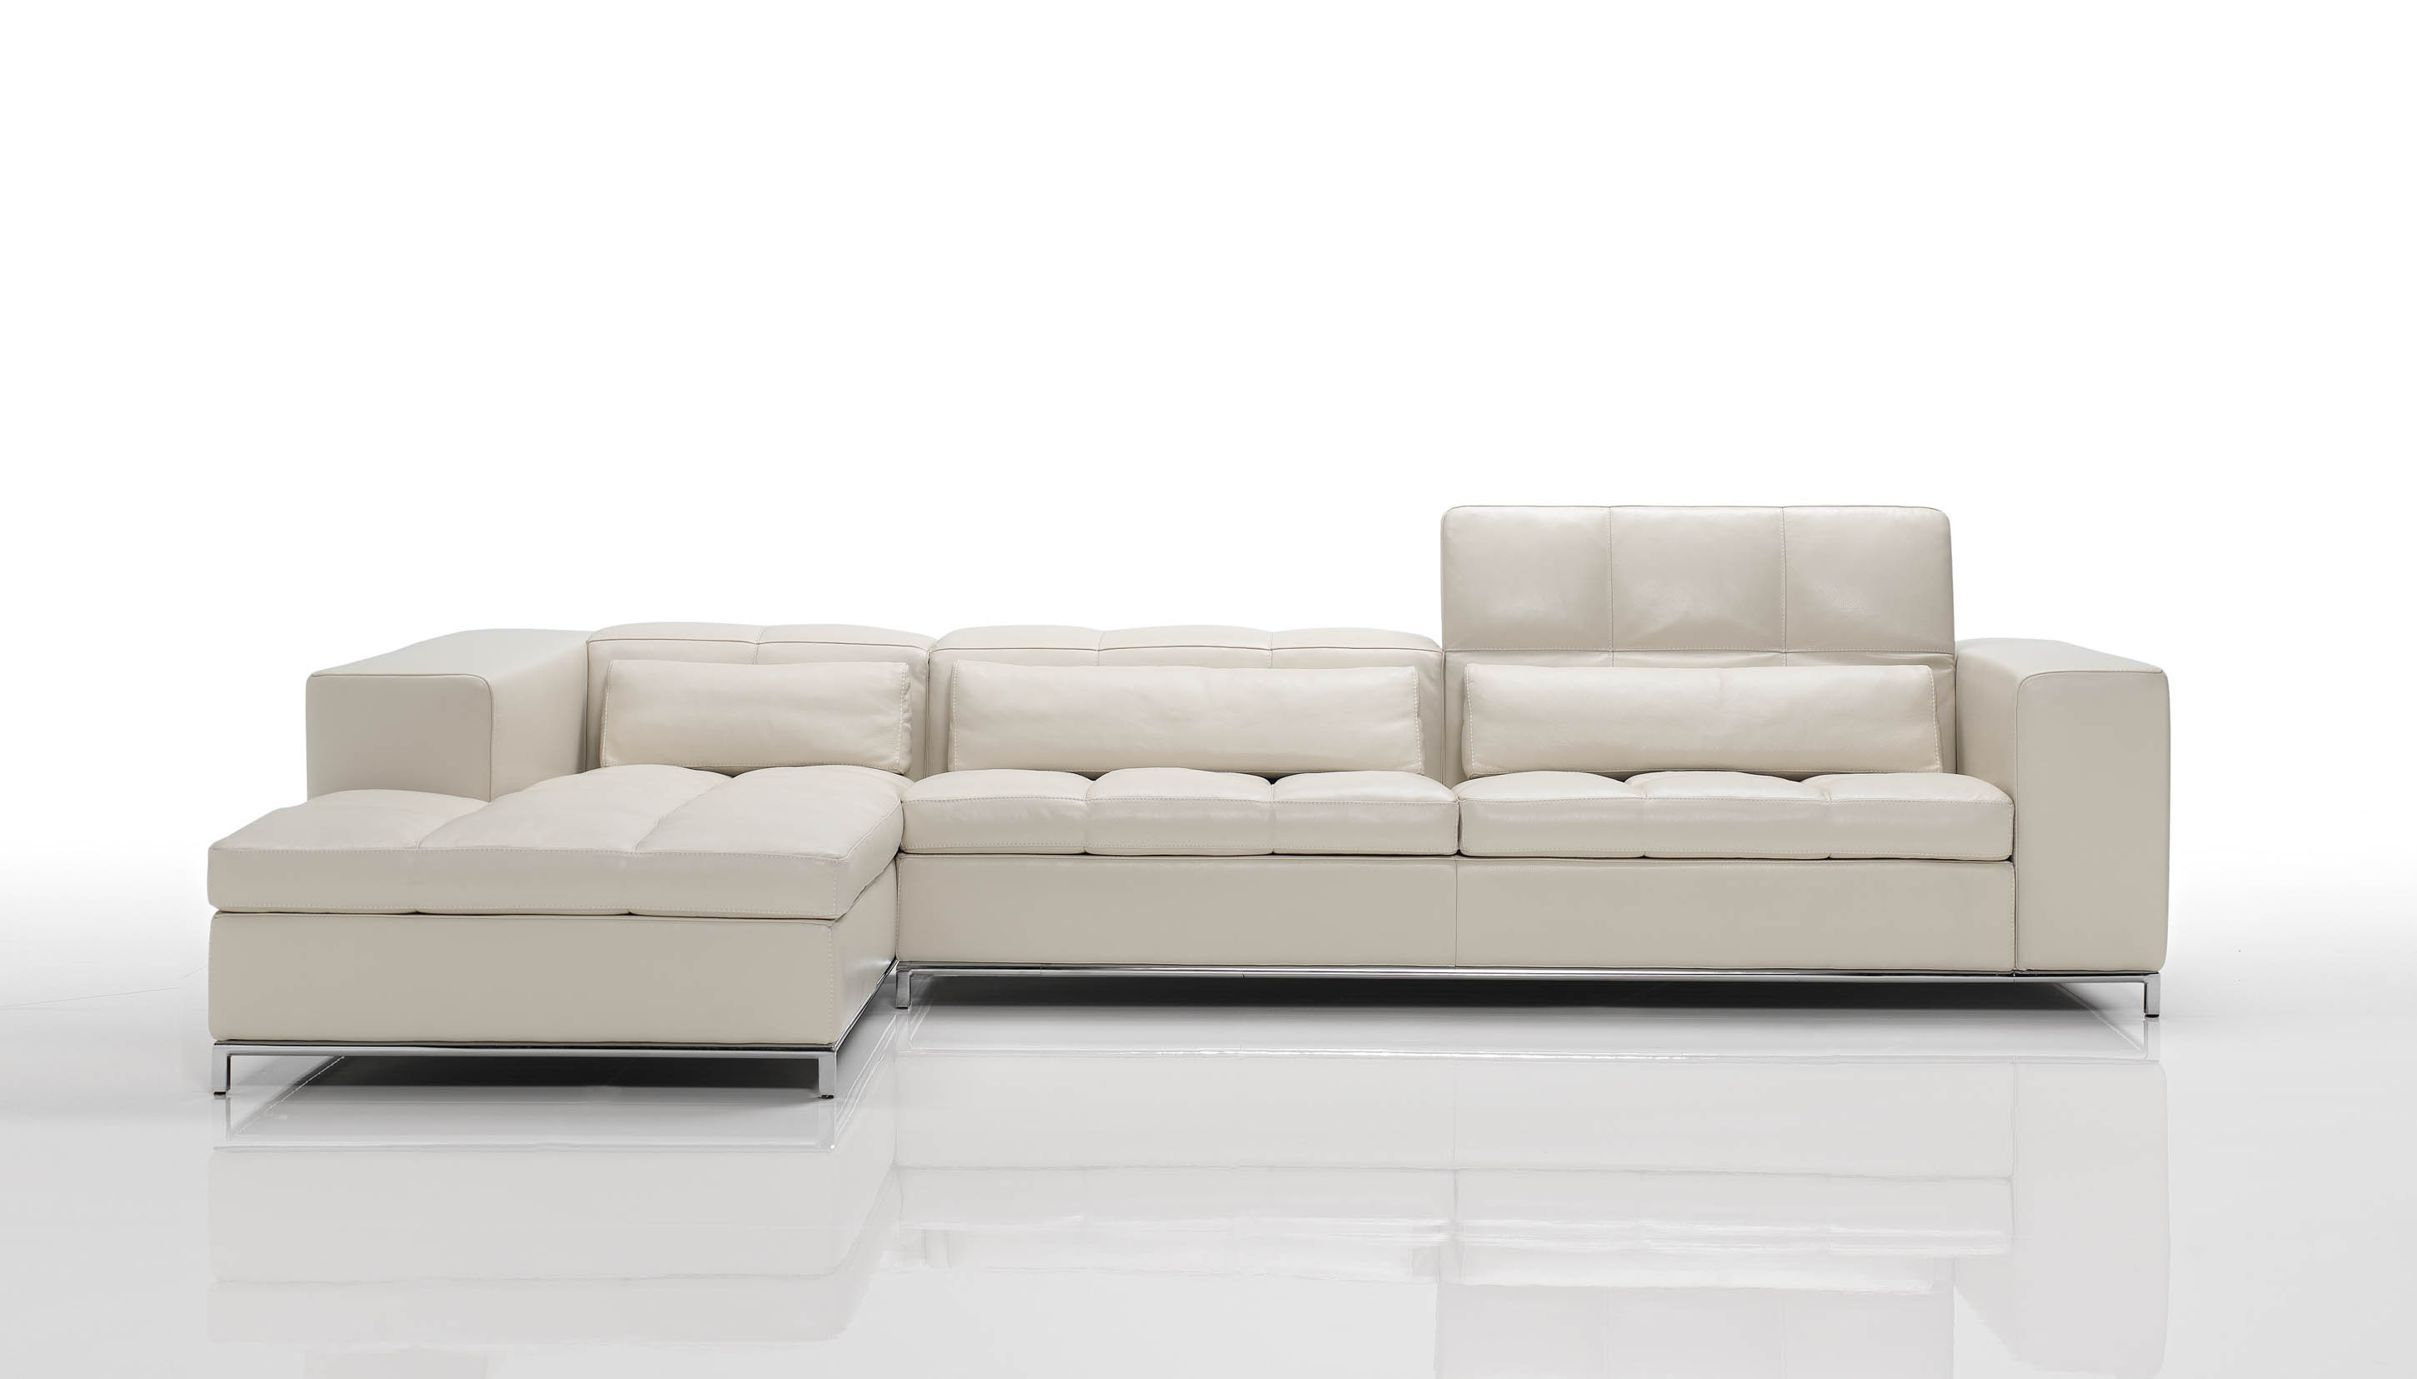 Nick Modern Luxury Sectional Sofa By Cierre Imbottiti Designed By Stefano Conficco Modern Sofa Sectional Modern Furniture Living Room Modern Bedroom Furniture